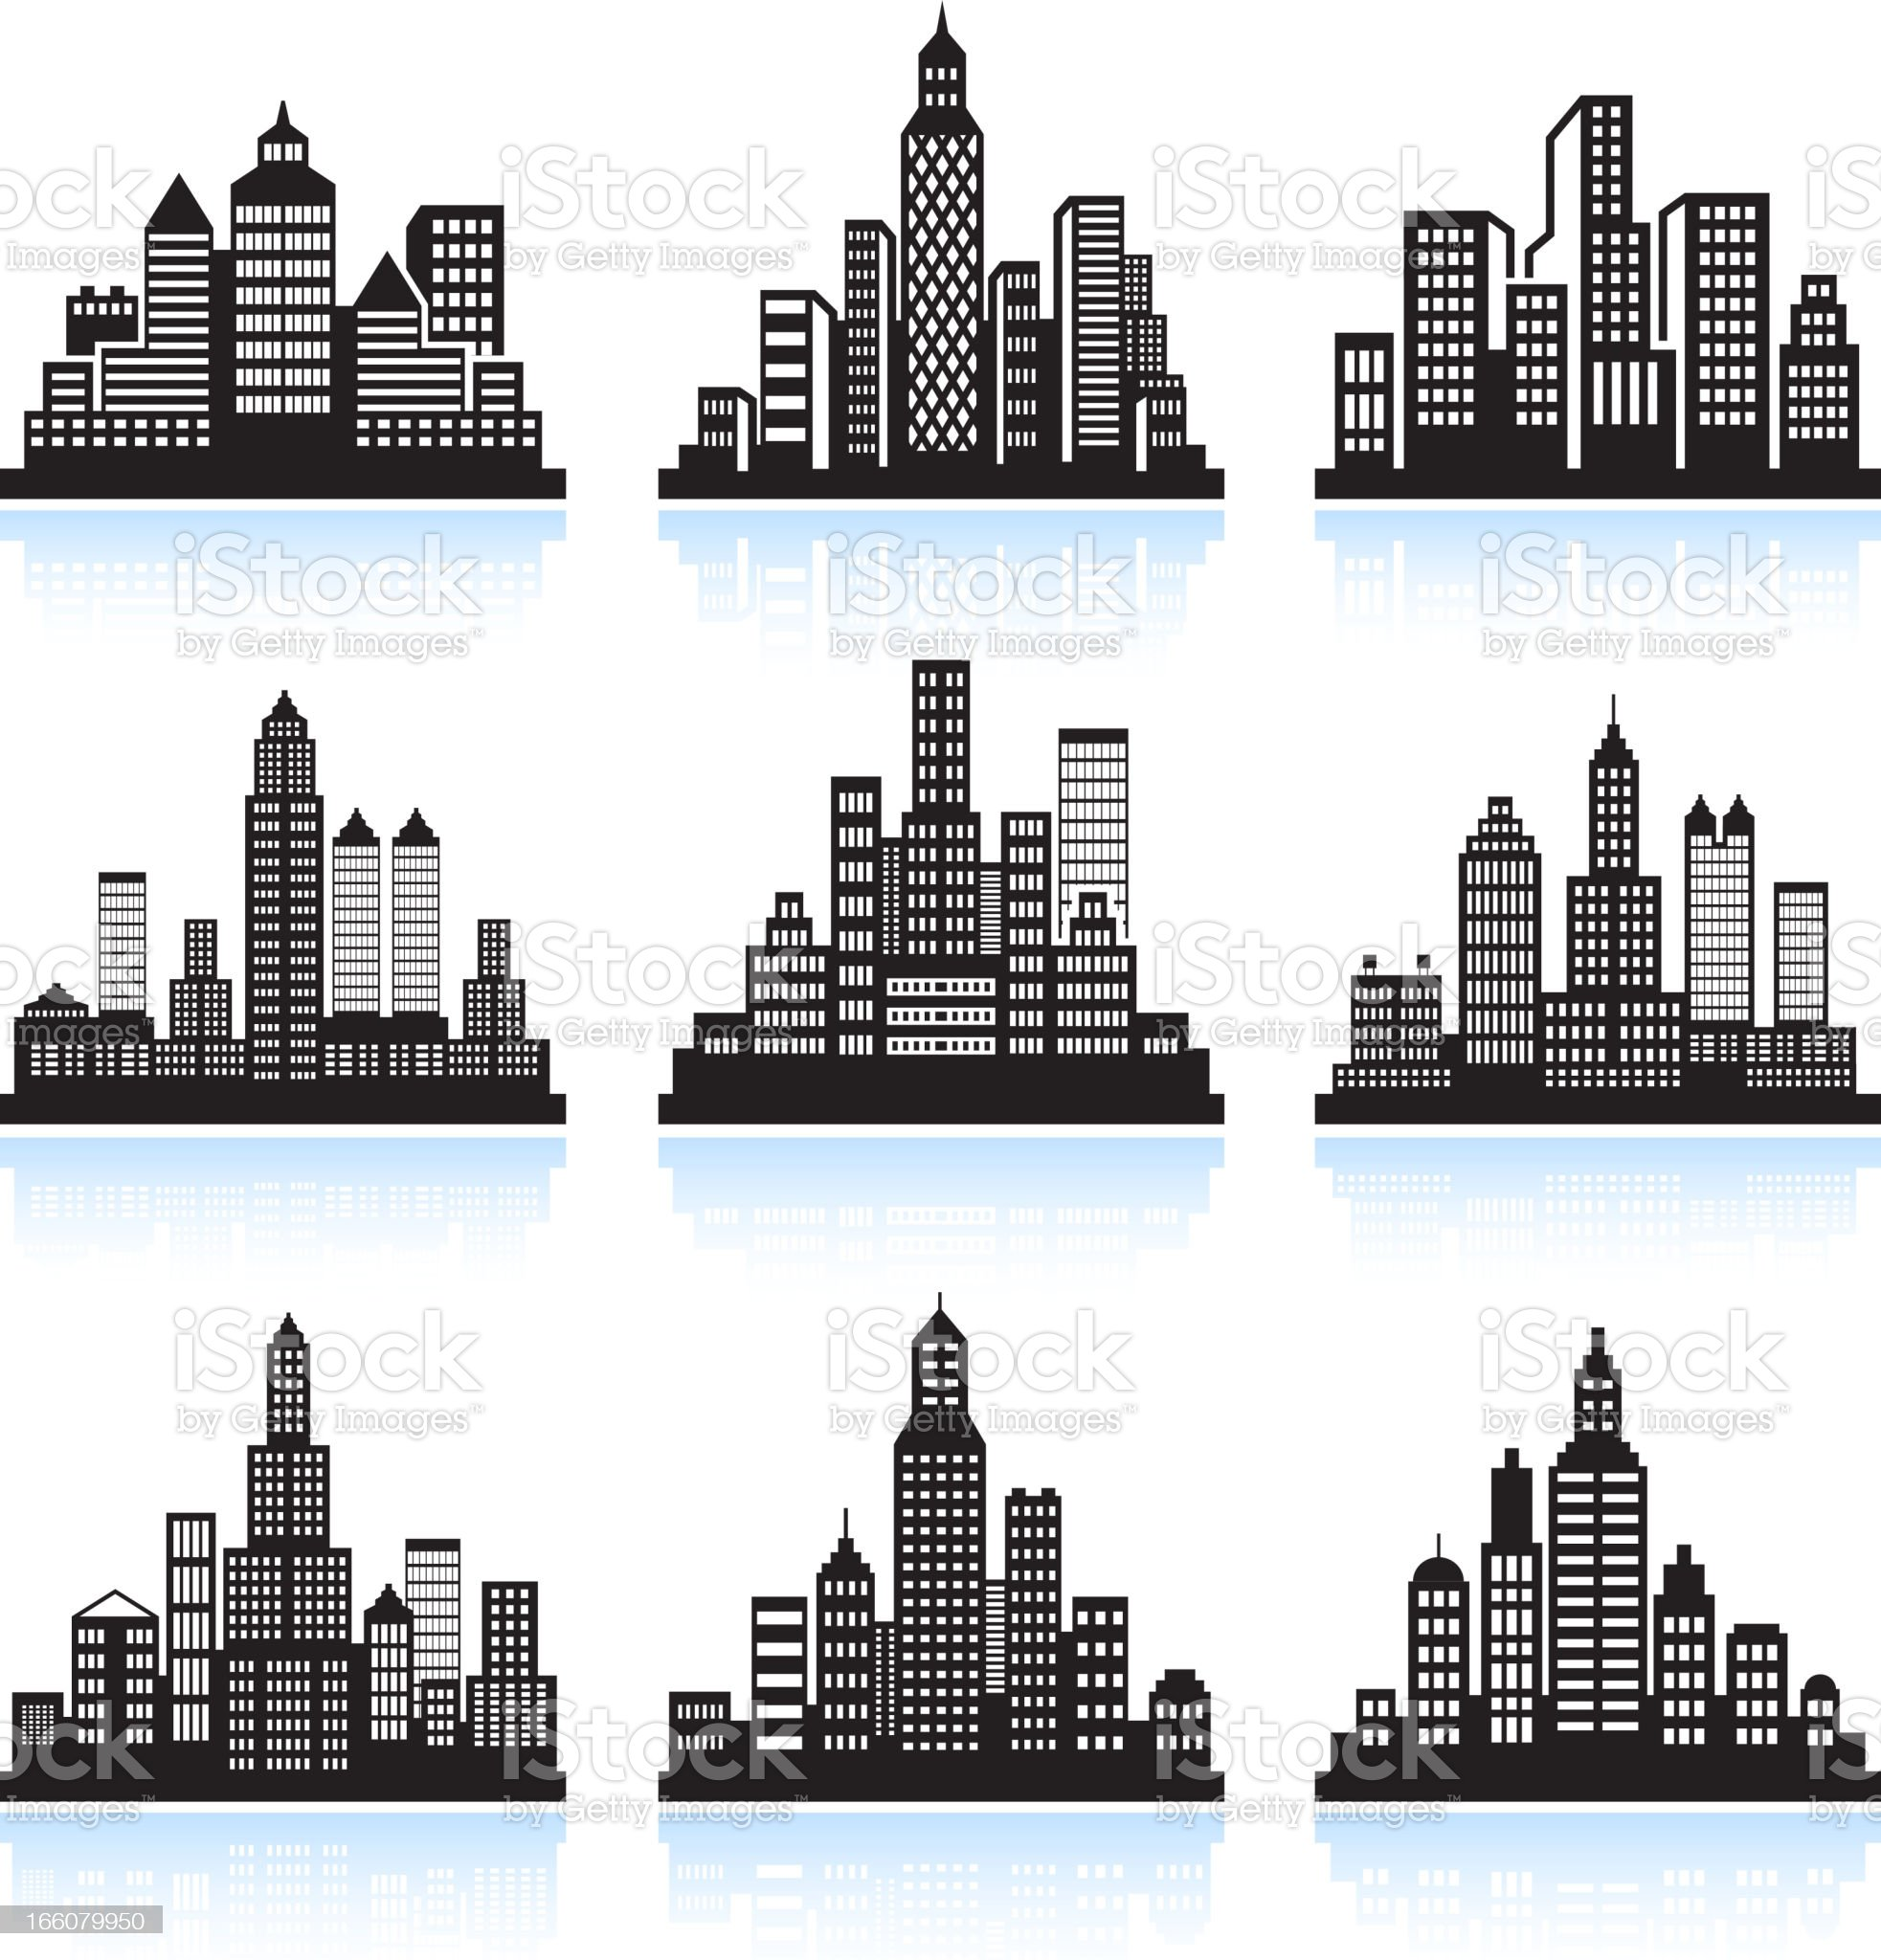 City skyline panoramic with Buildings vector icon set royalty-free stock vector art